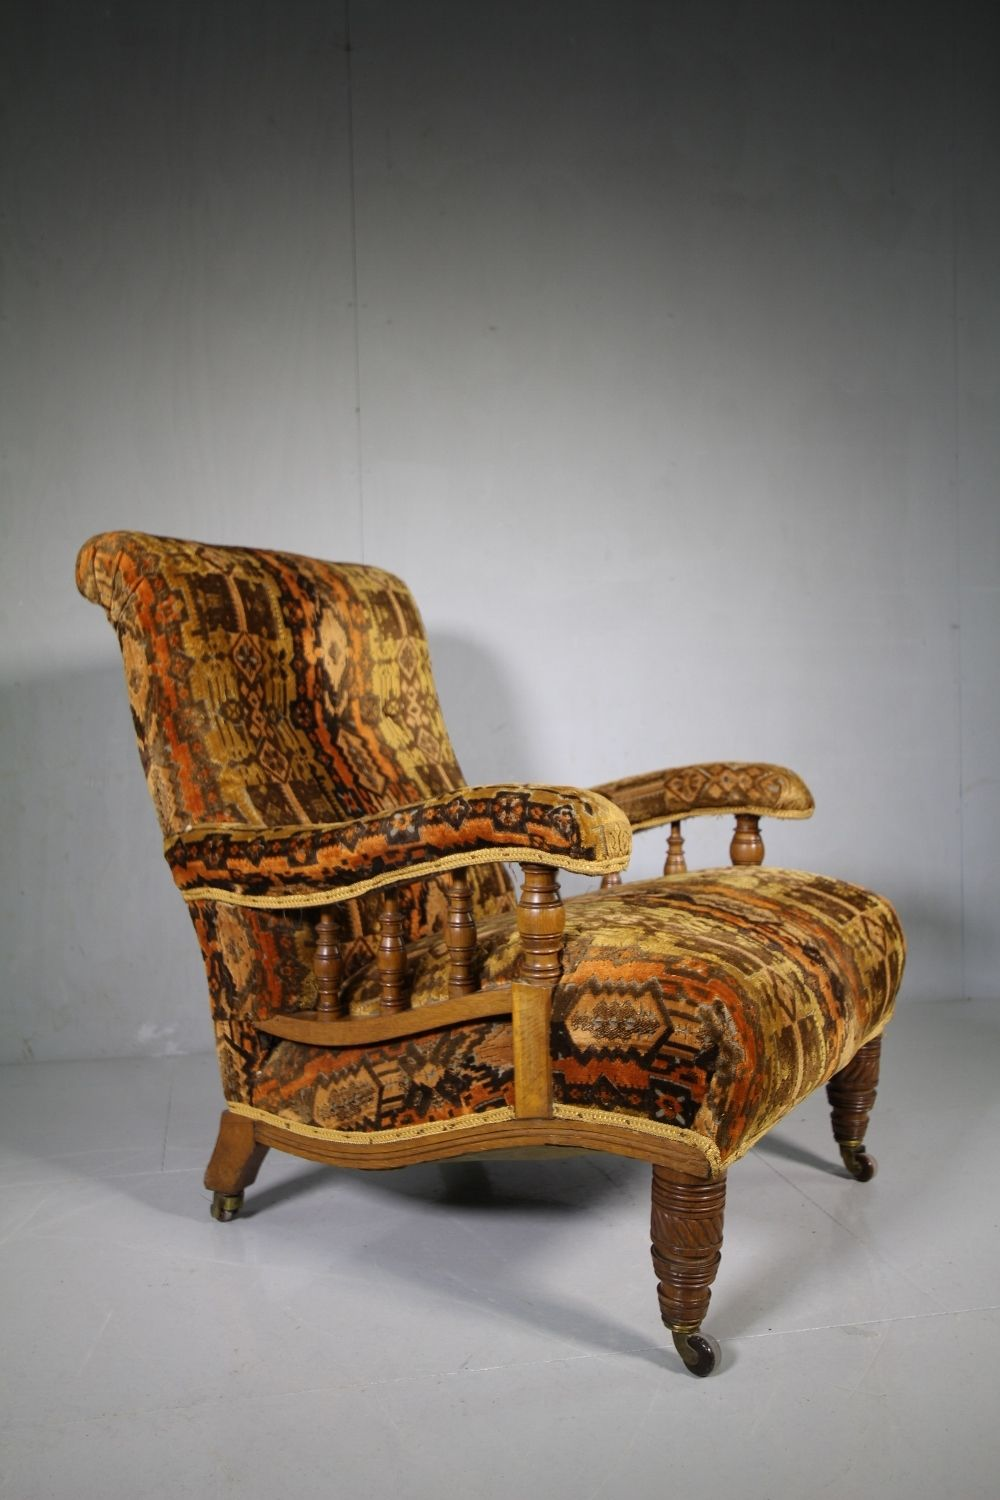 Gillows 19th Century Antique Oak Upholstered Armchair